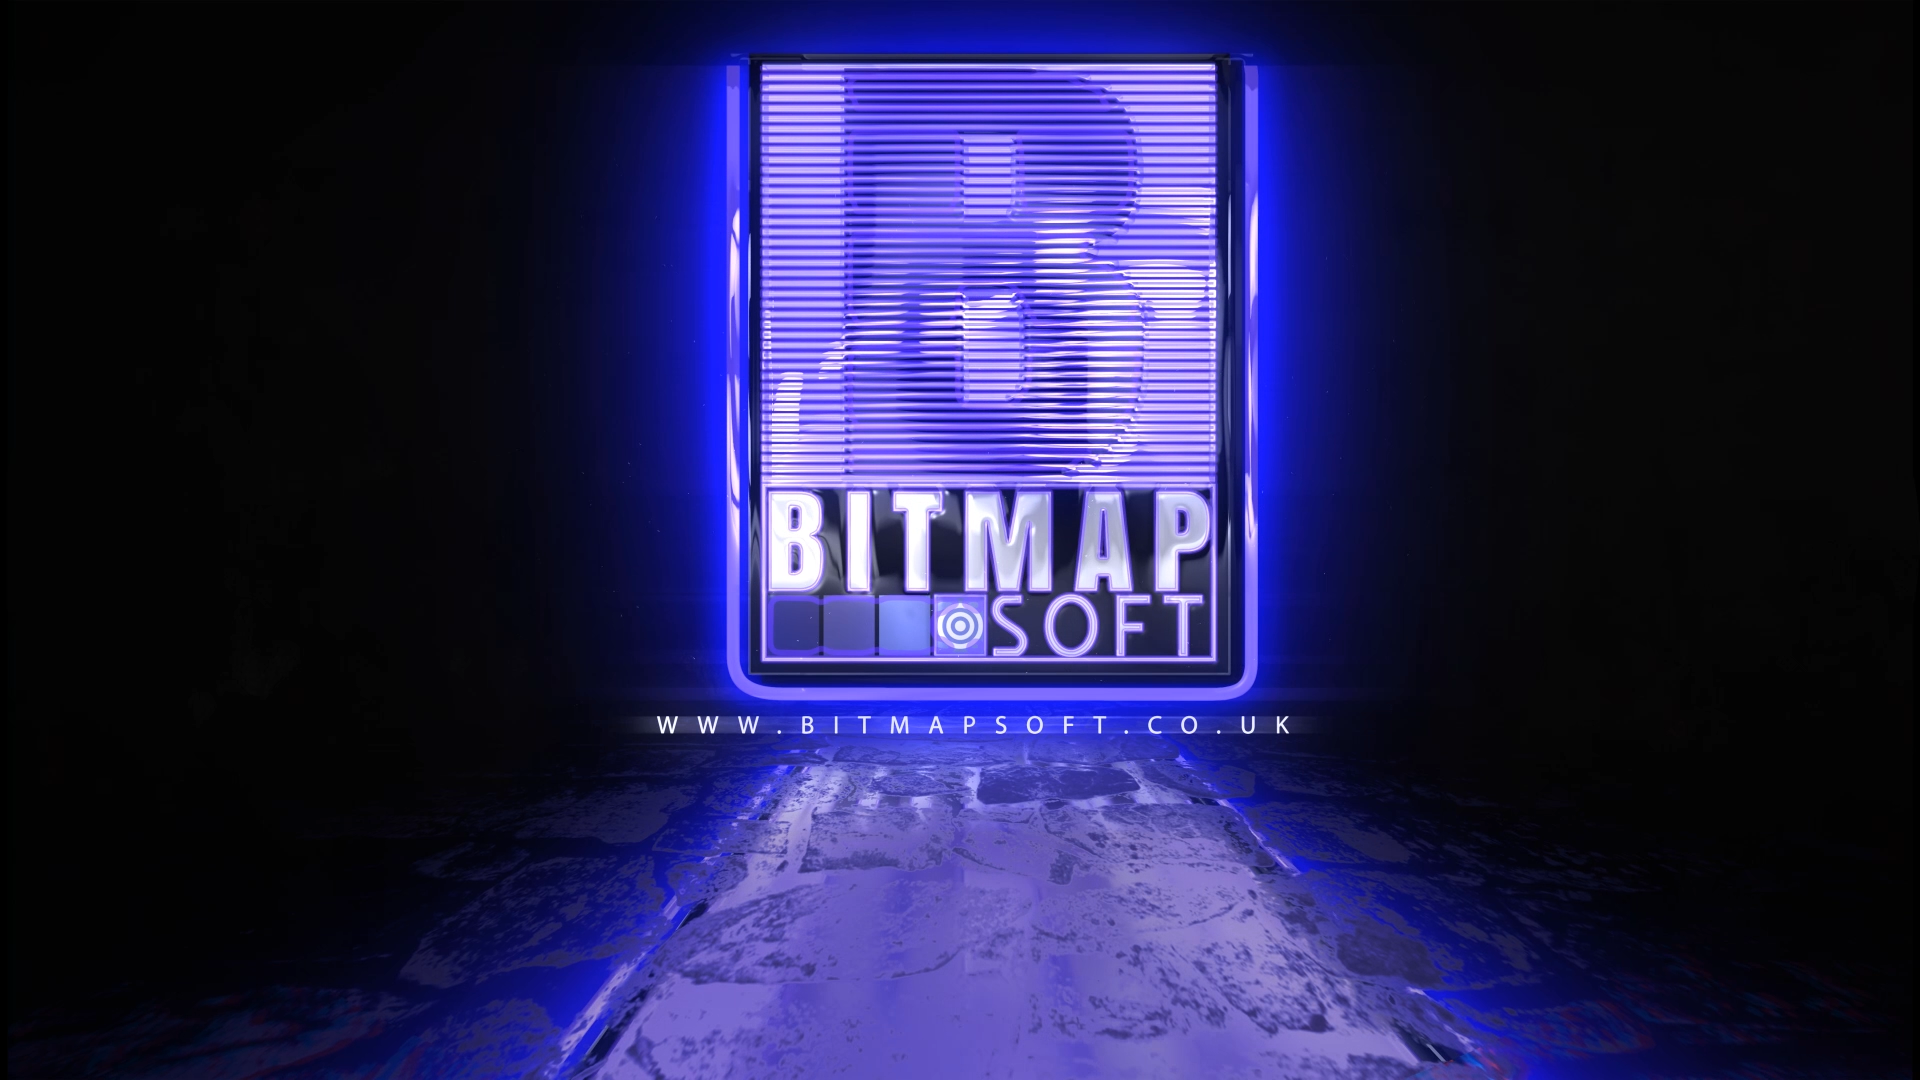 Nope, these are not the Bitmap Brothers! This is BitmapSoft, Darren's new retrogame publishing company.